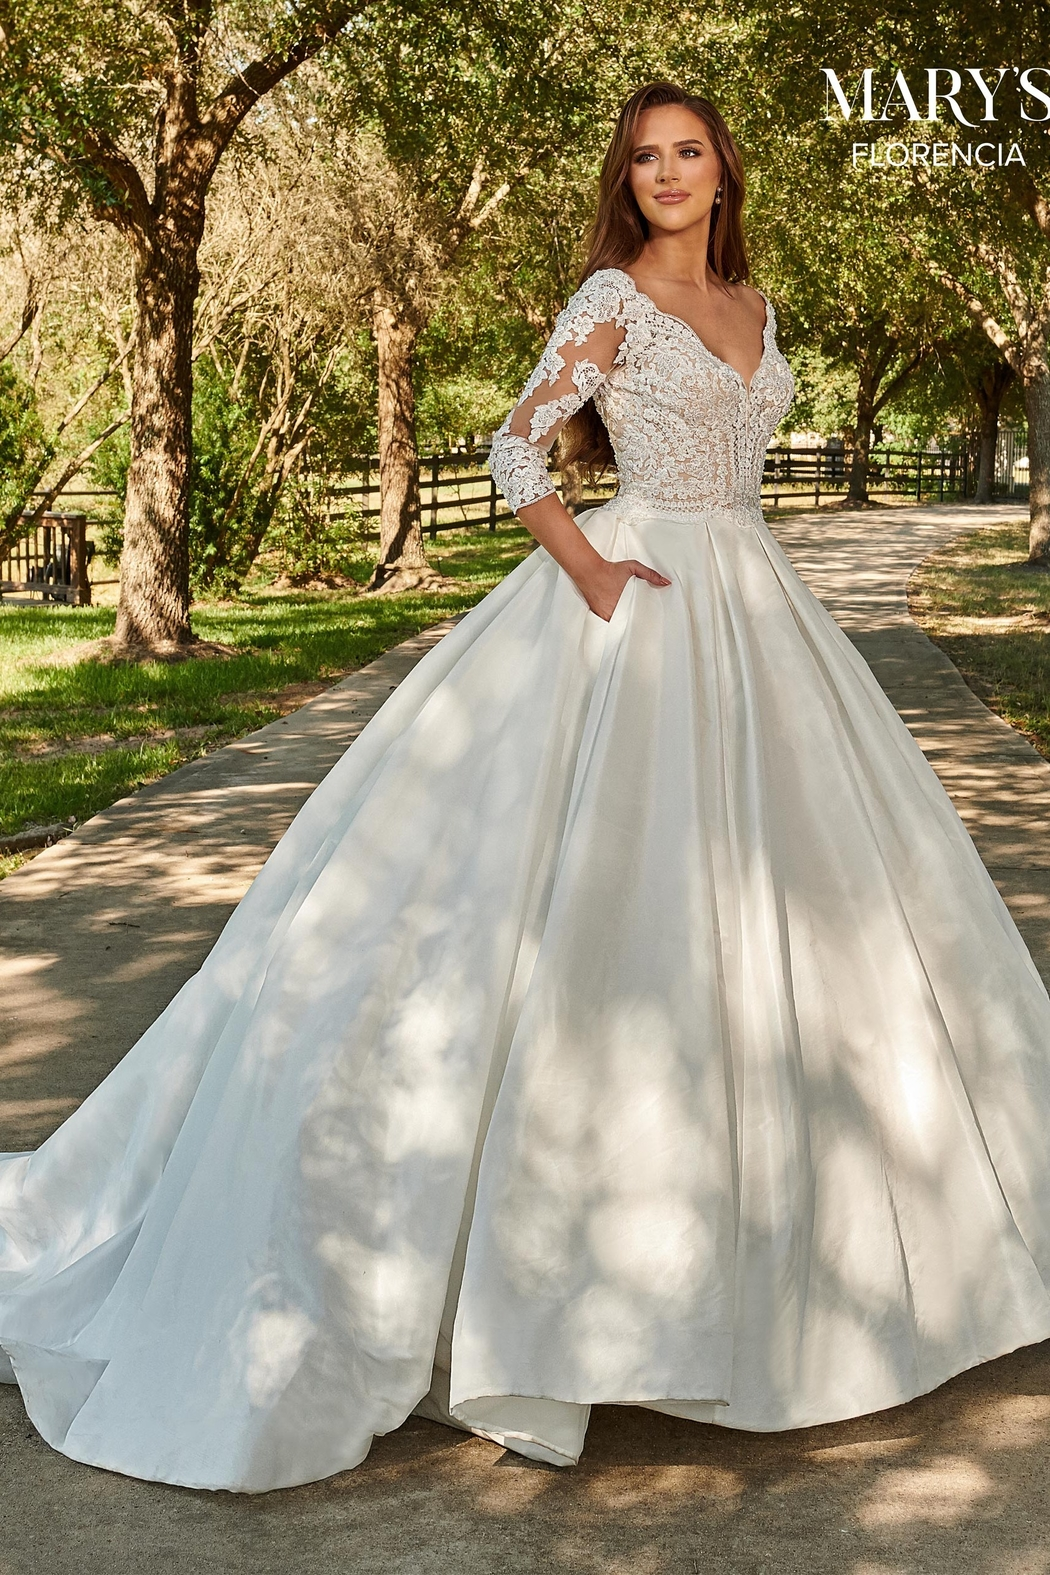 Mary's Bridal Florencia Bridal Gown in Ivory - Main Image